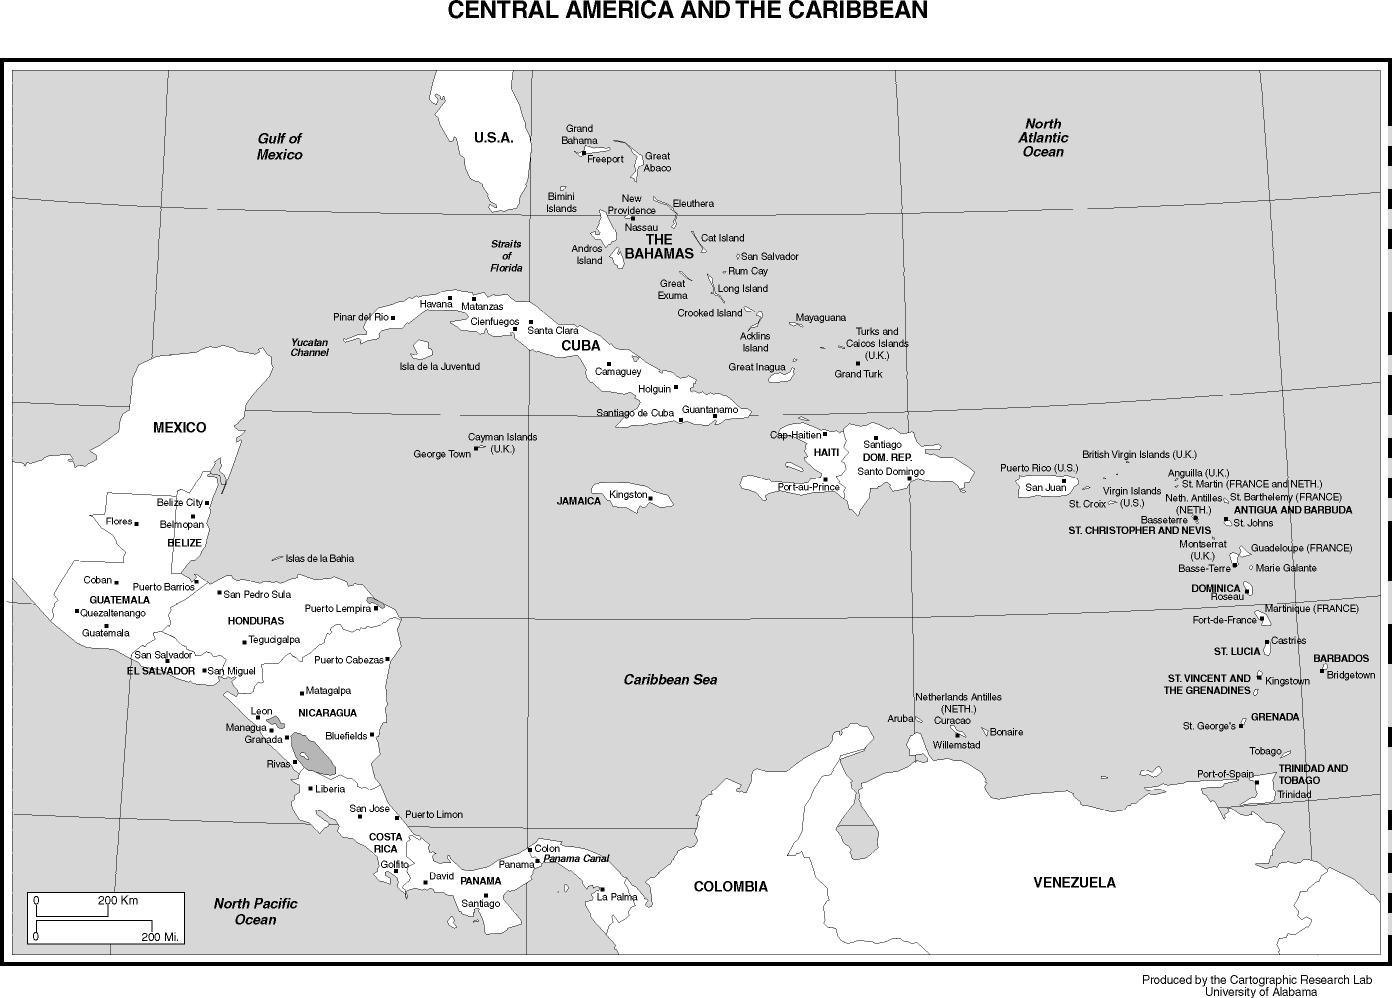 Central American And Caribbean Capitals And Major Cities Black White Version